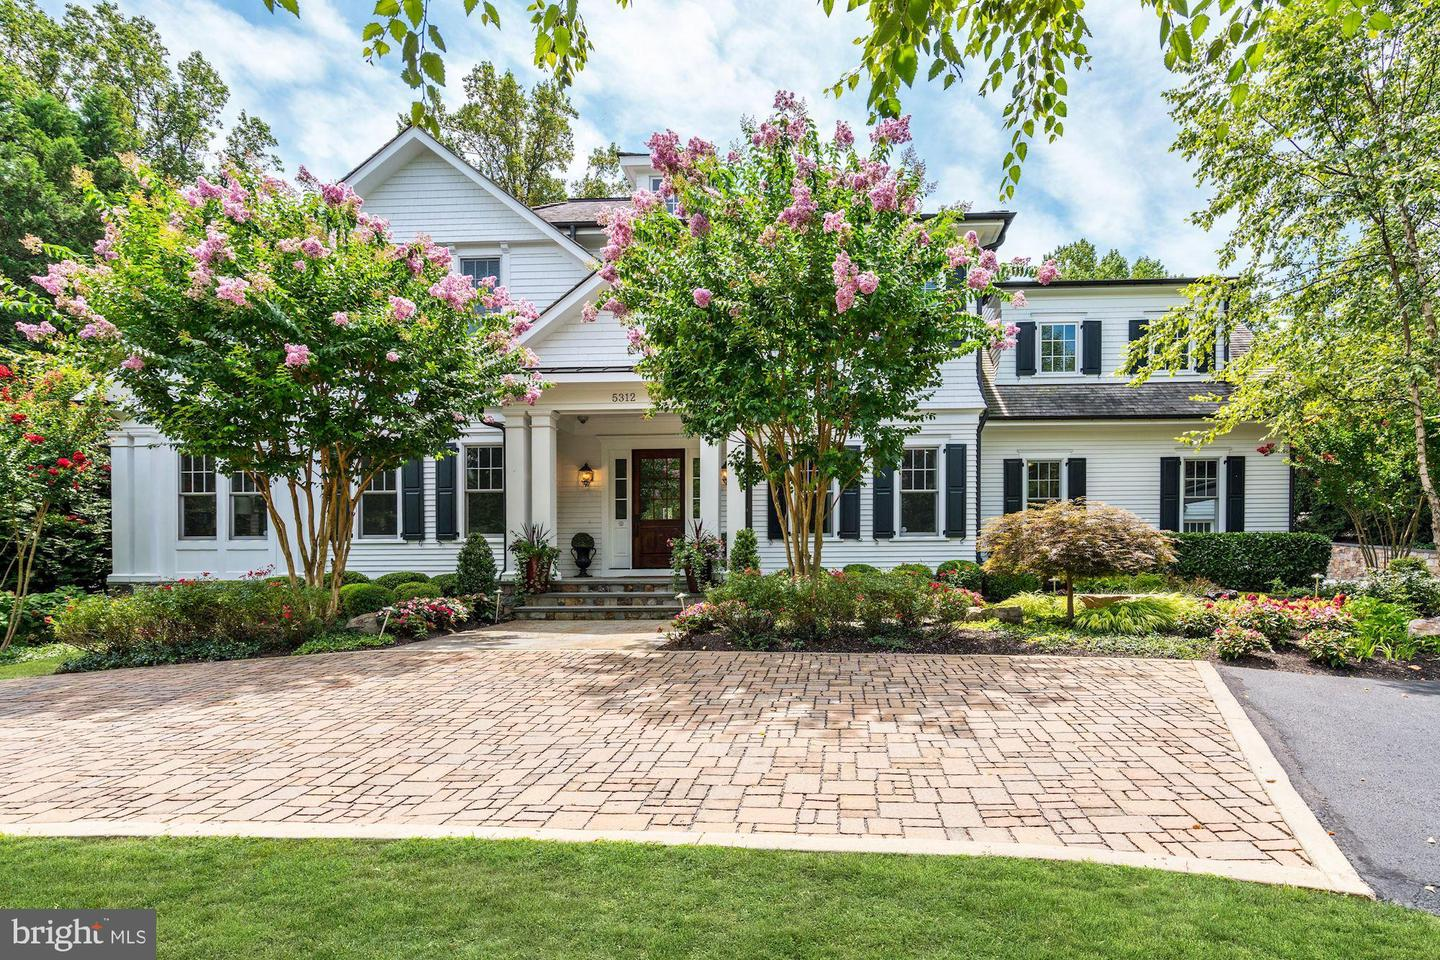 Bethesda, Maryland, United States Luxury Real Estate - Homes